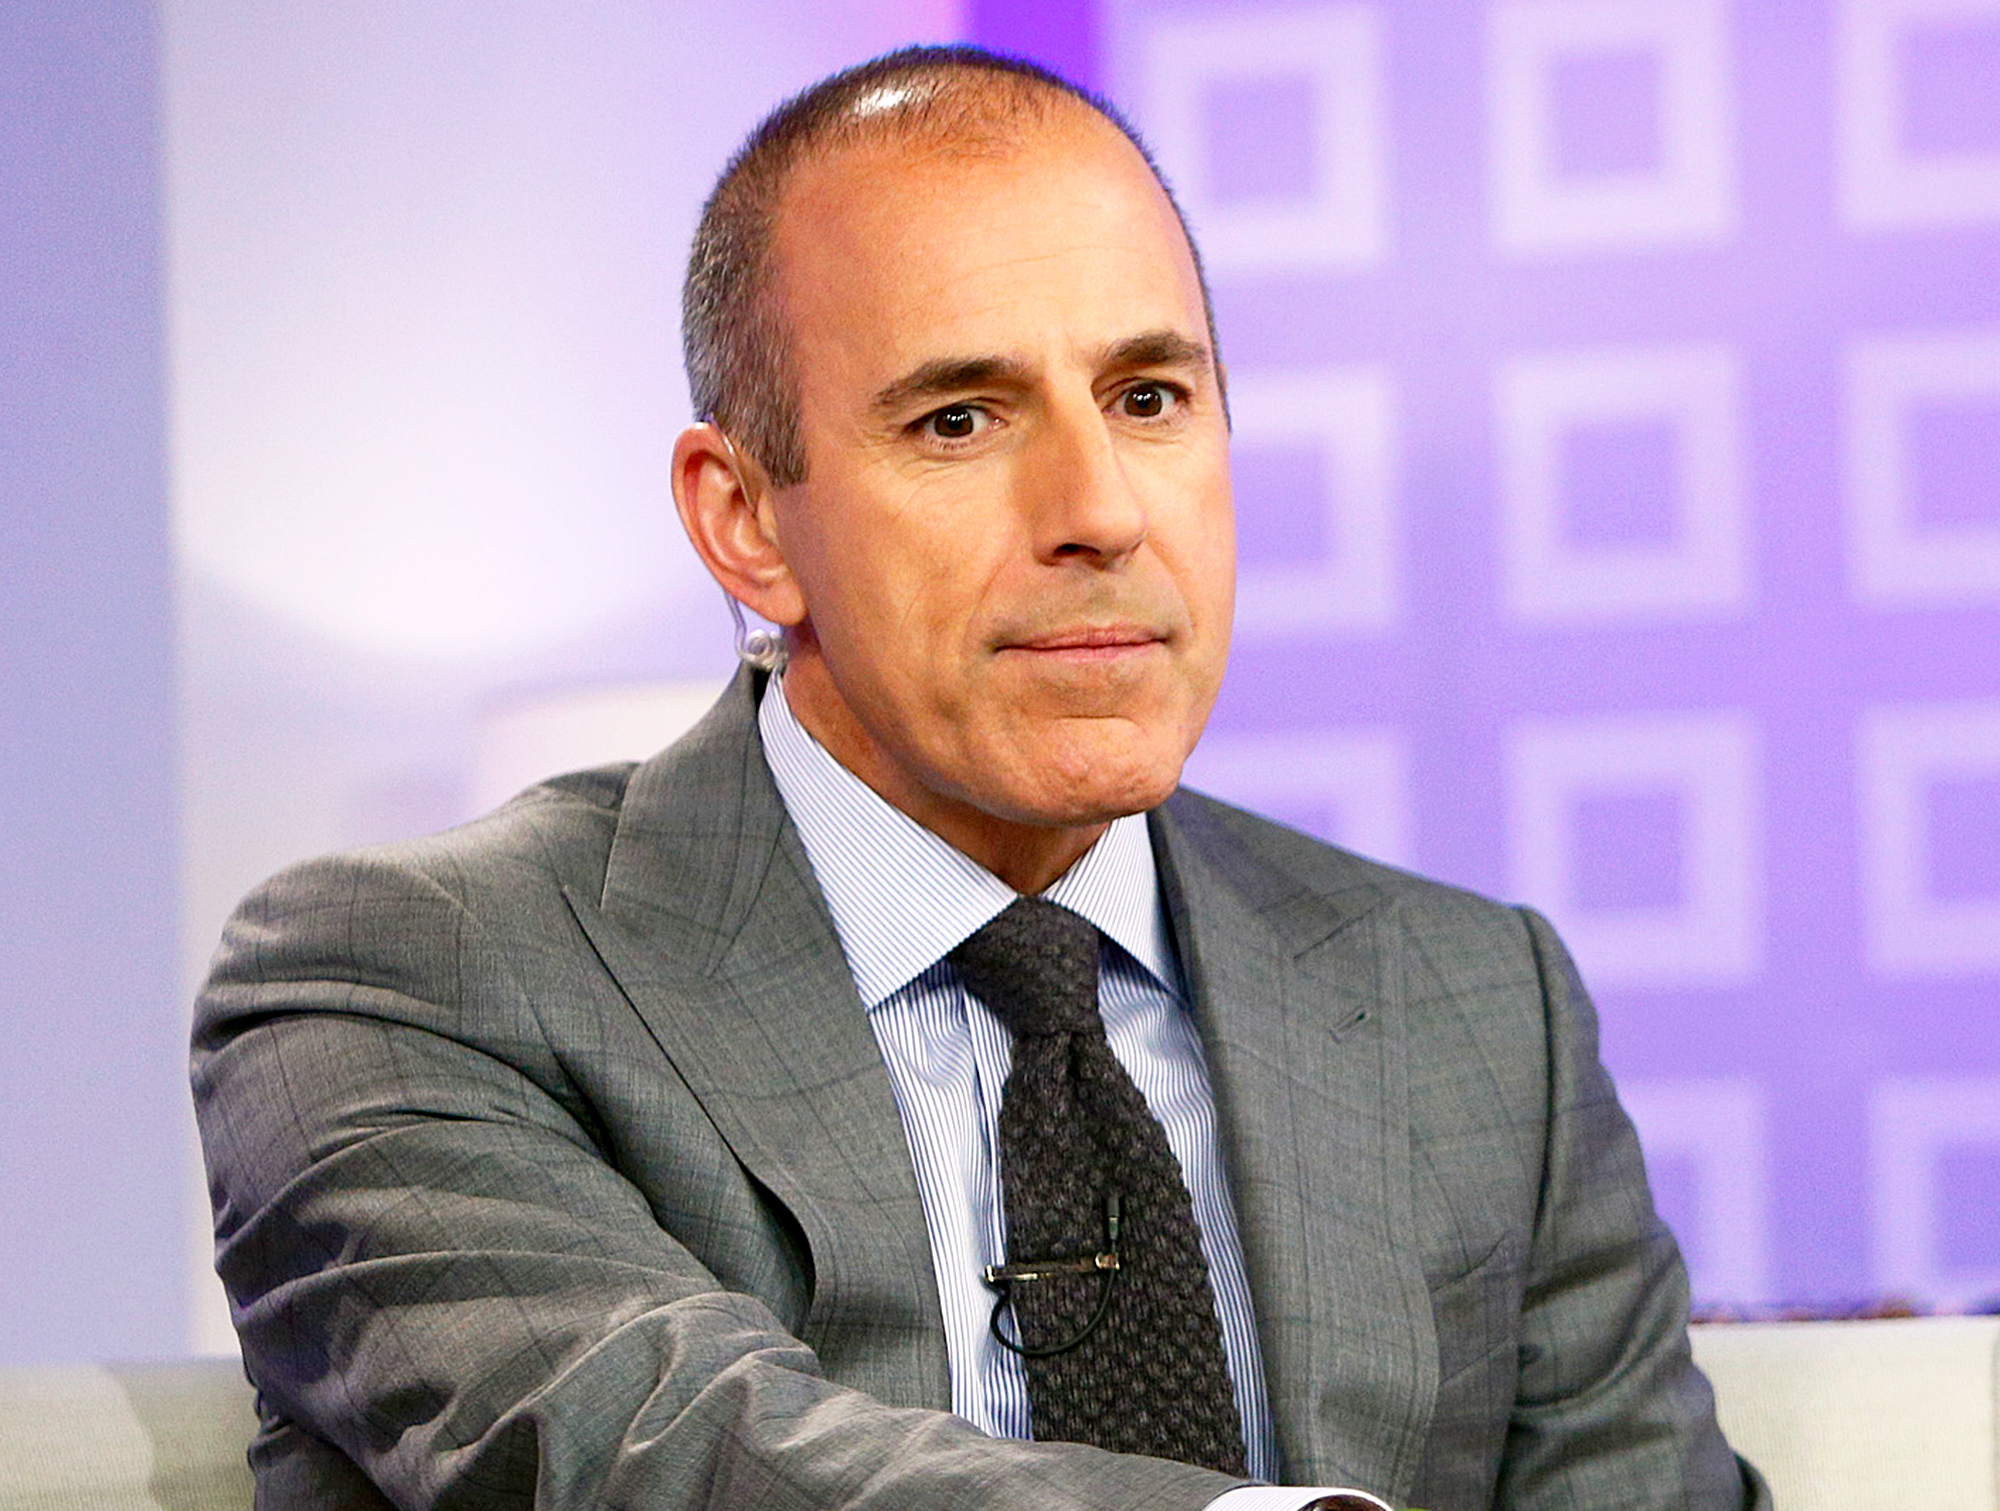 Matt Lauer on NBC News' 'Today' show